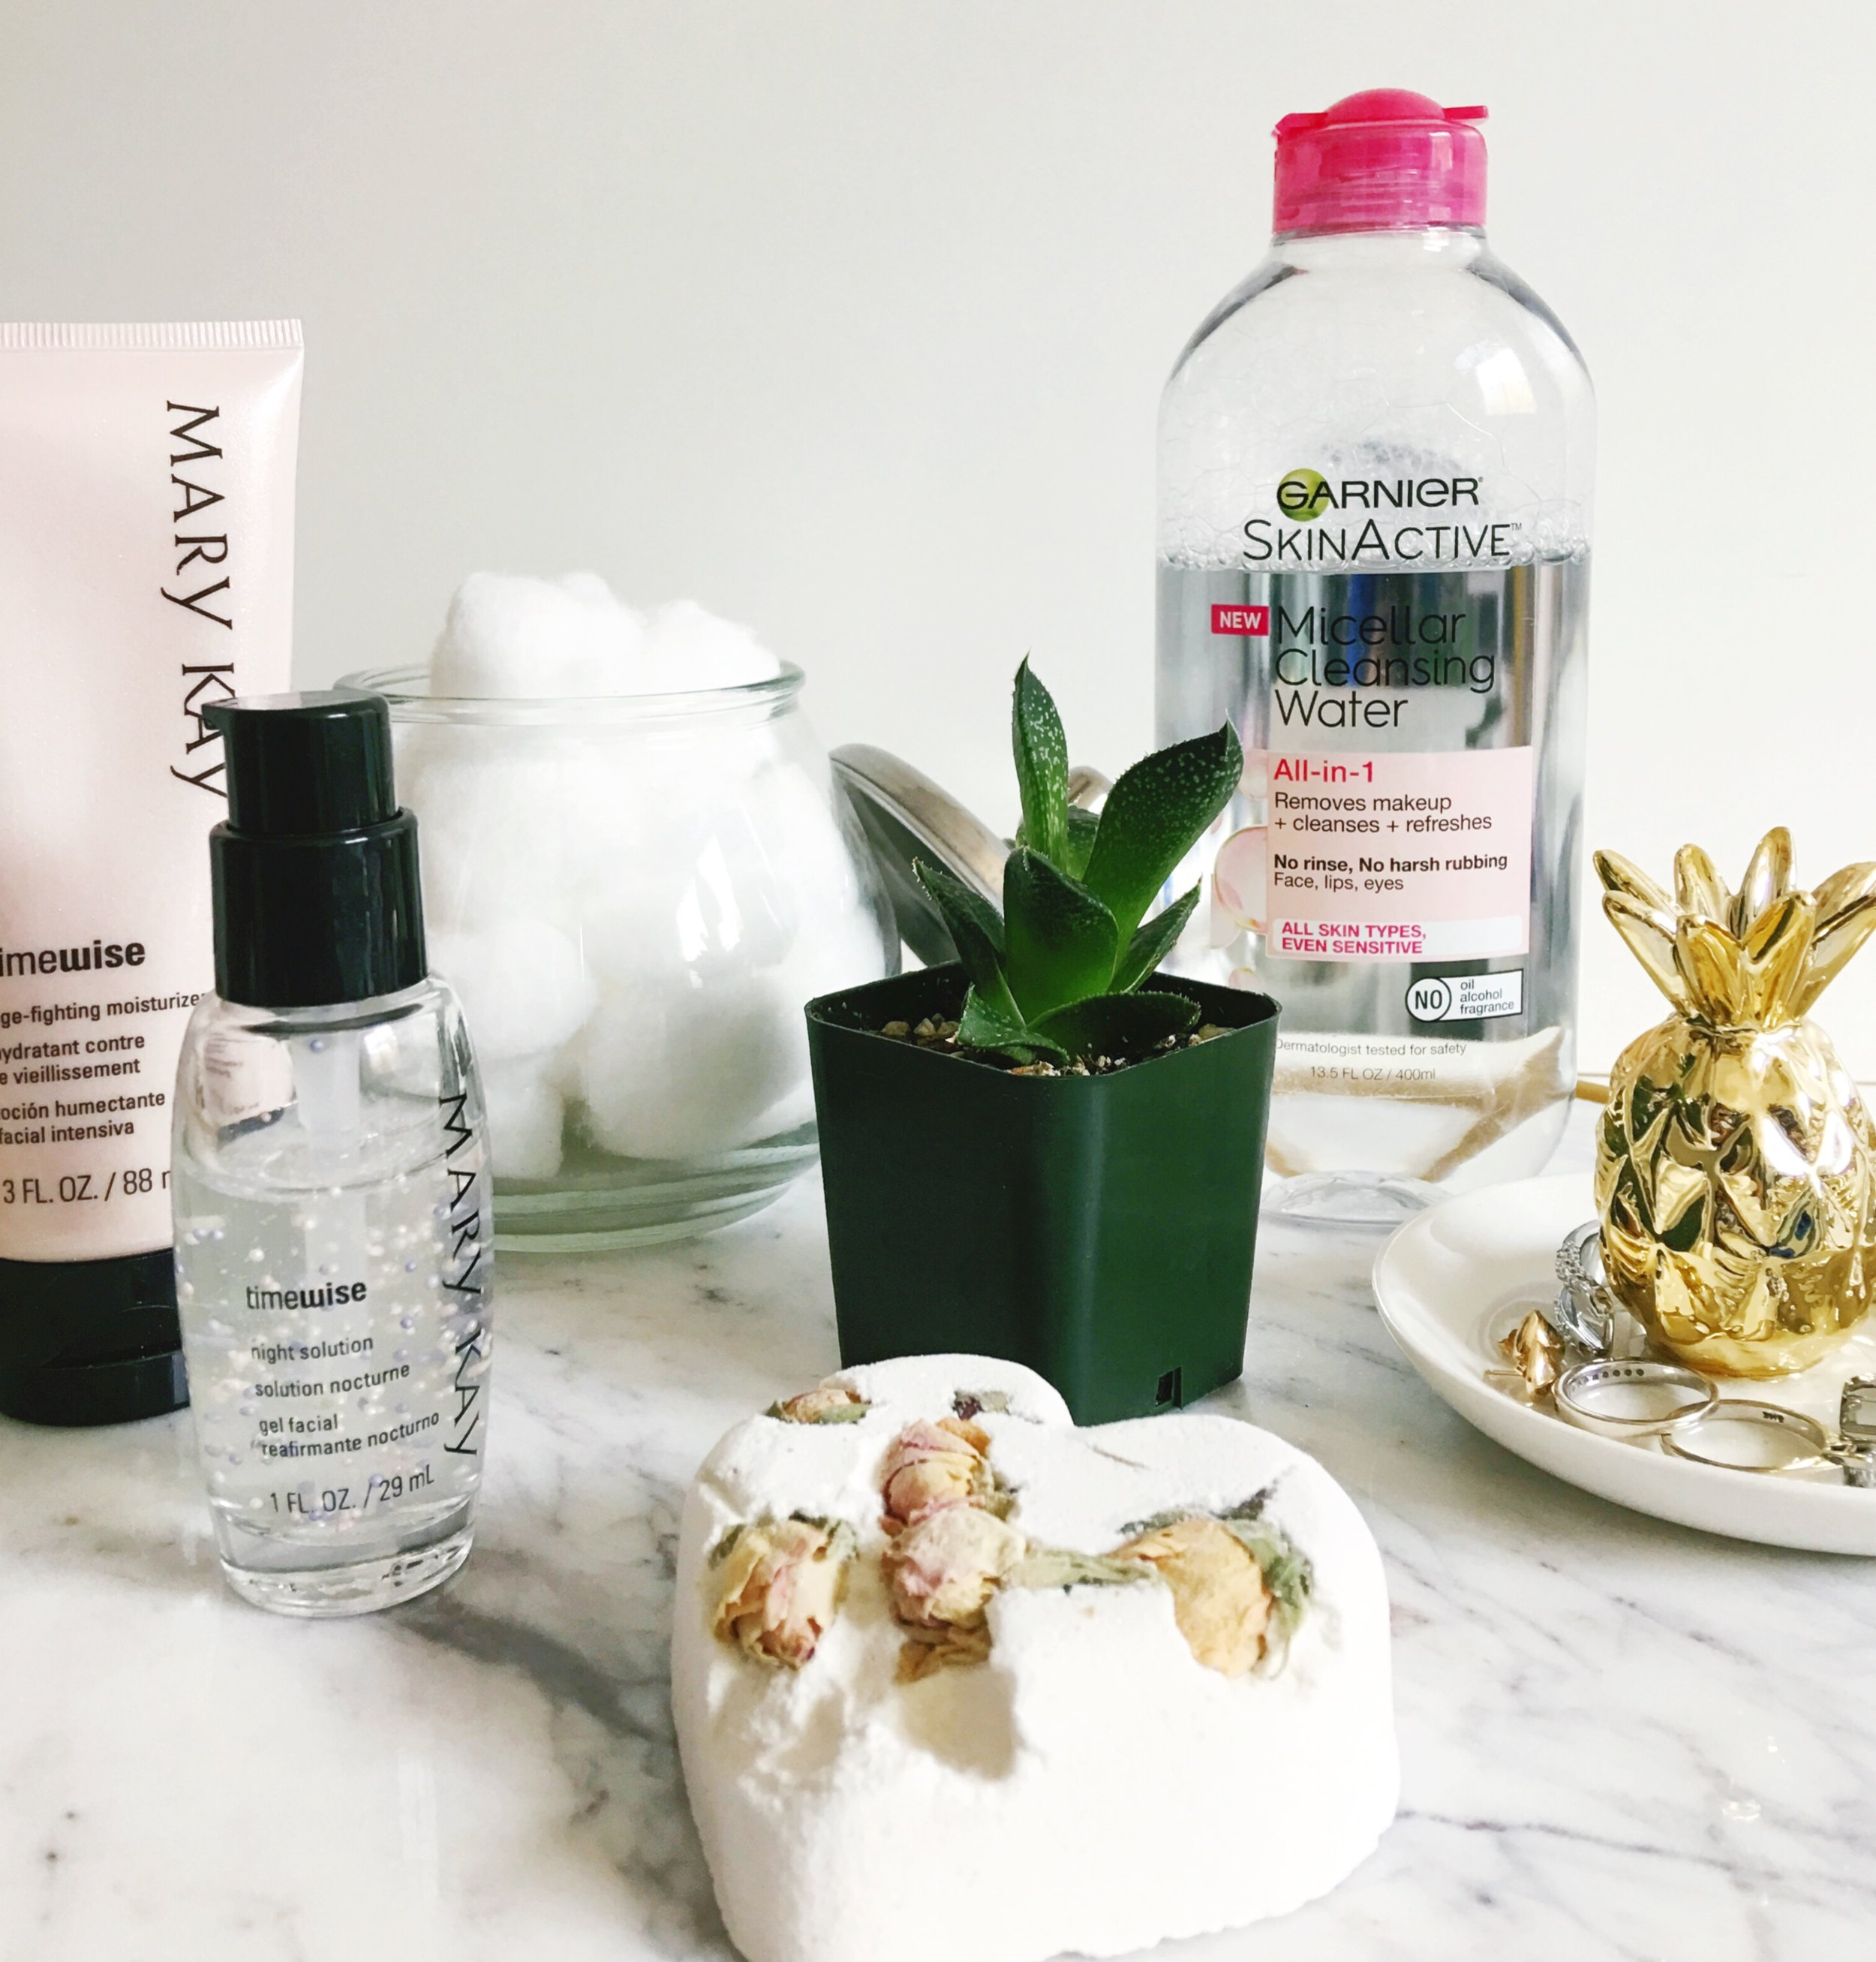 Garnier SkinActive Micellar Cleansing Water for All Skin Types/ Cotton Balls/ Mary Kay Timewise Miracle set Age- Fighting Moisturizer/ Succulent/ Pineapple Jewelry holder/ Lush Cosmetics Tisty Totsy Bath Bomb